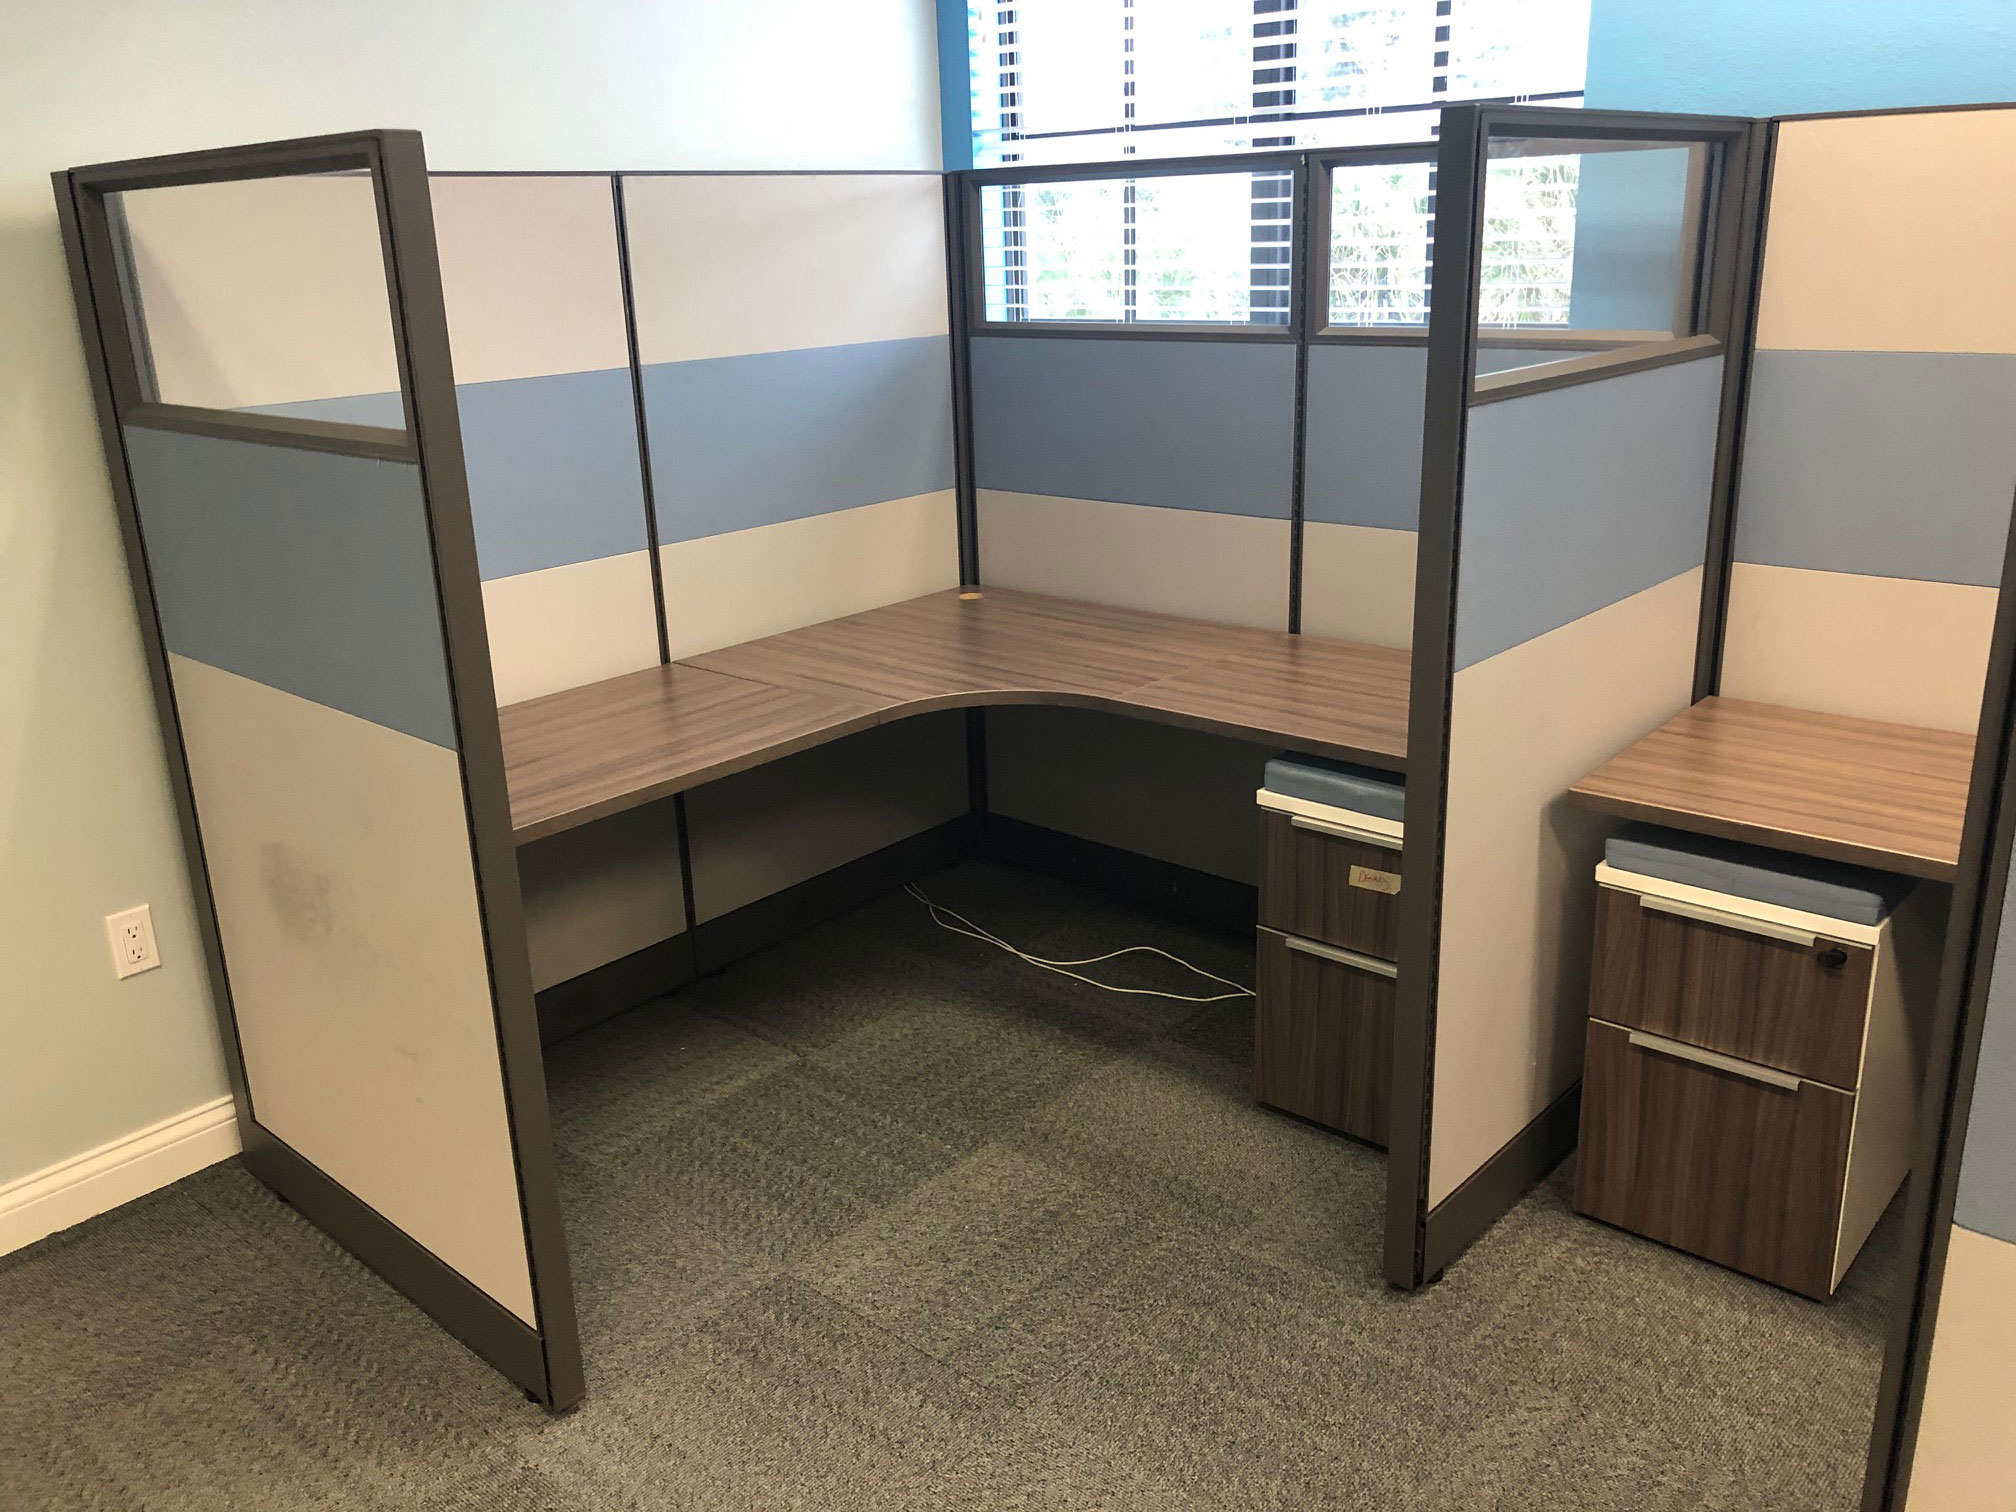 office-cubicles-for-sale-in-key-biscane-florida-2.jpg